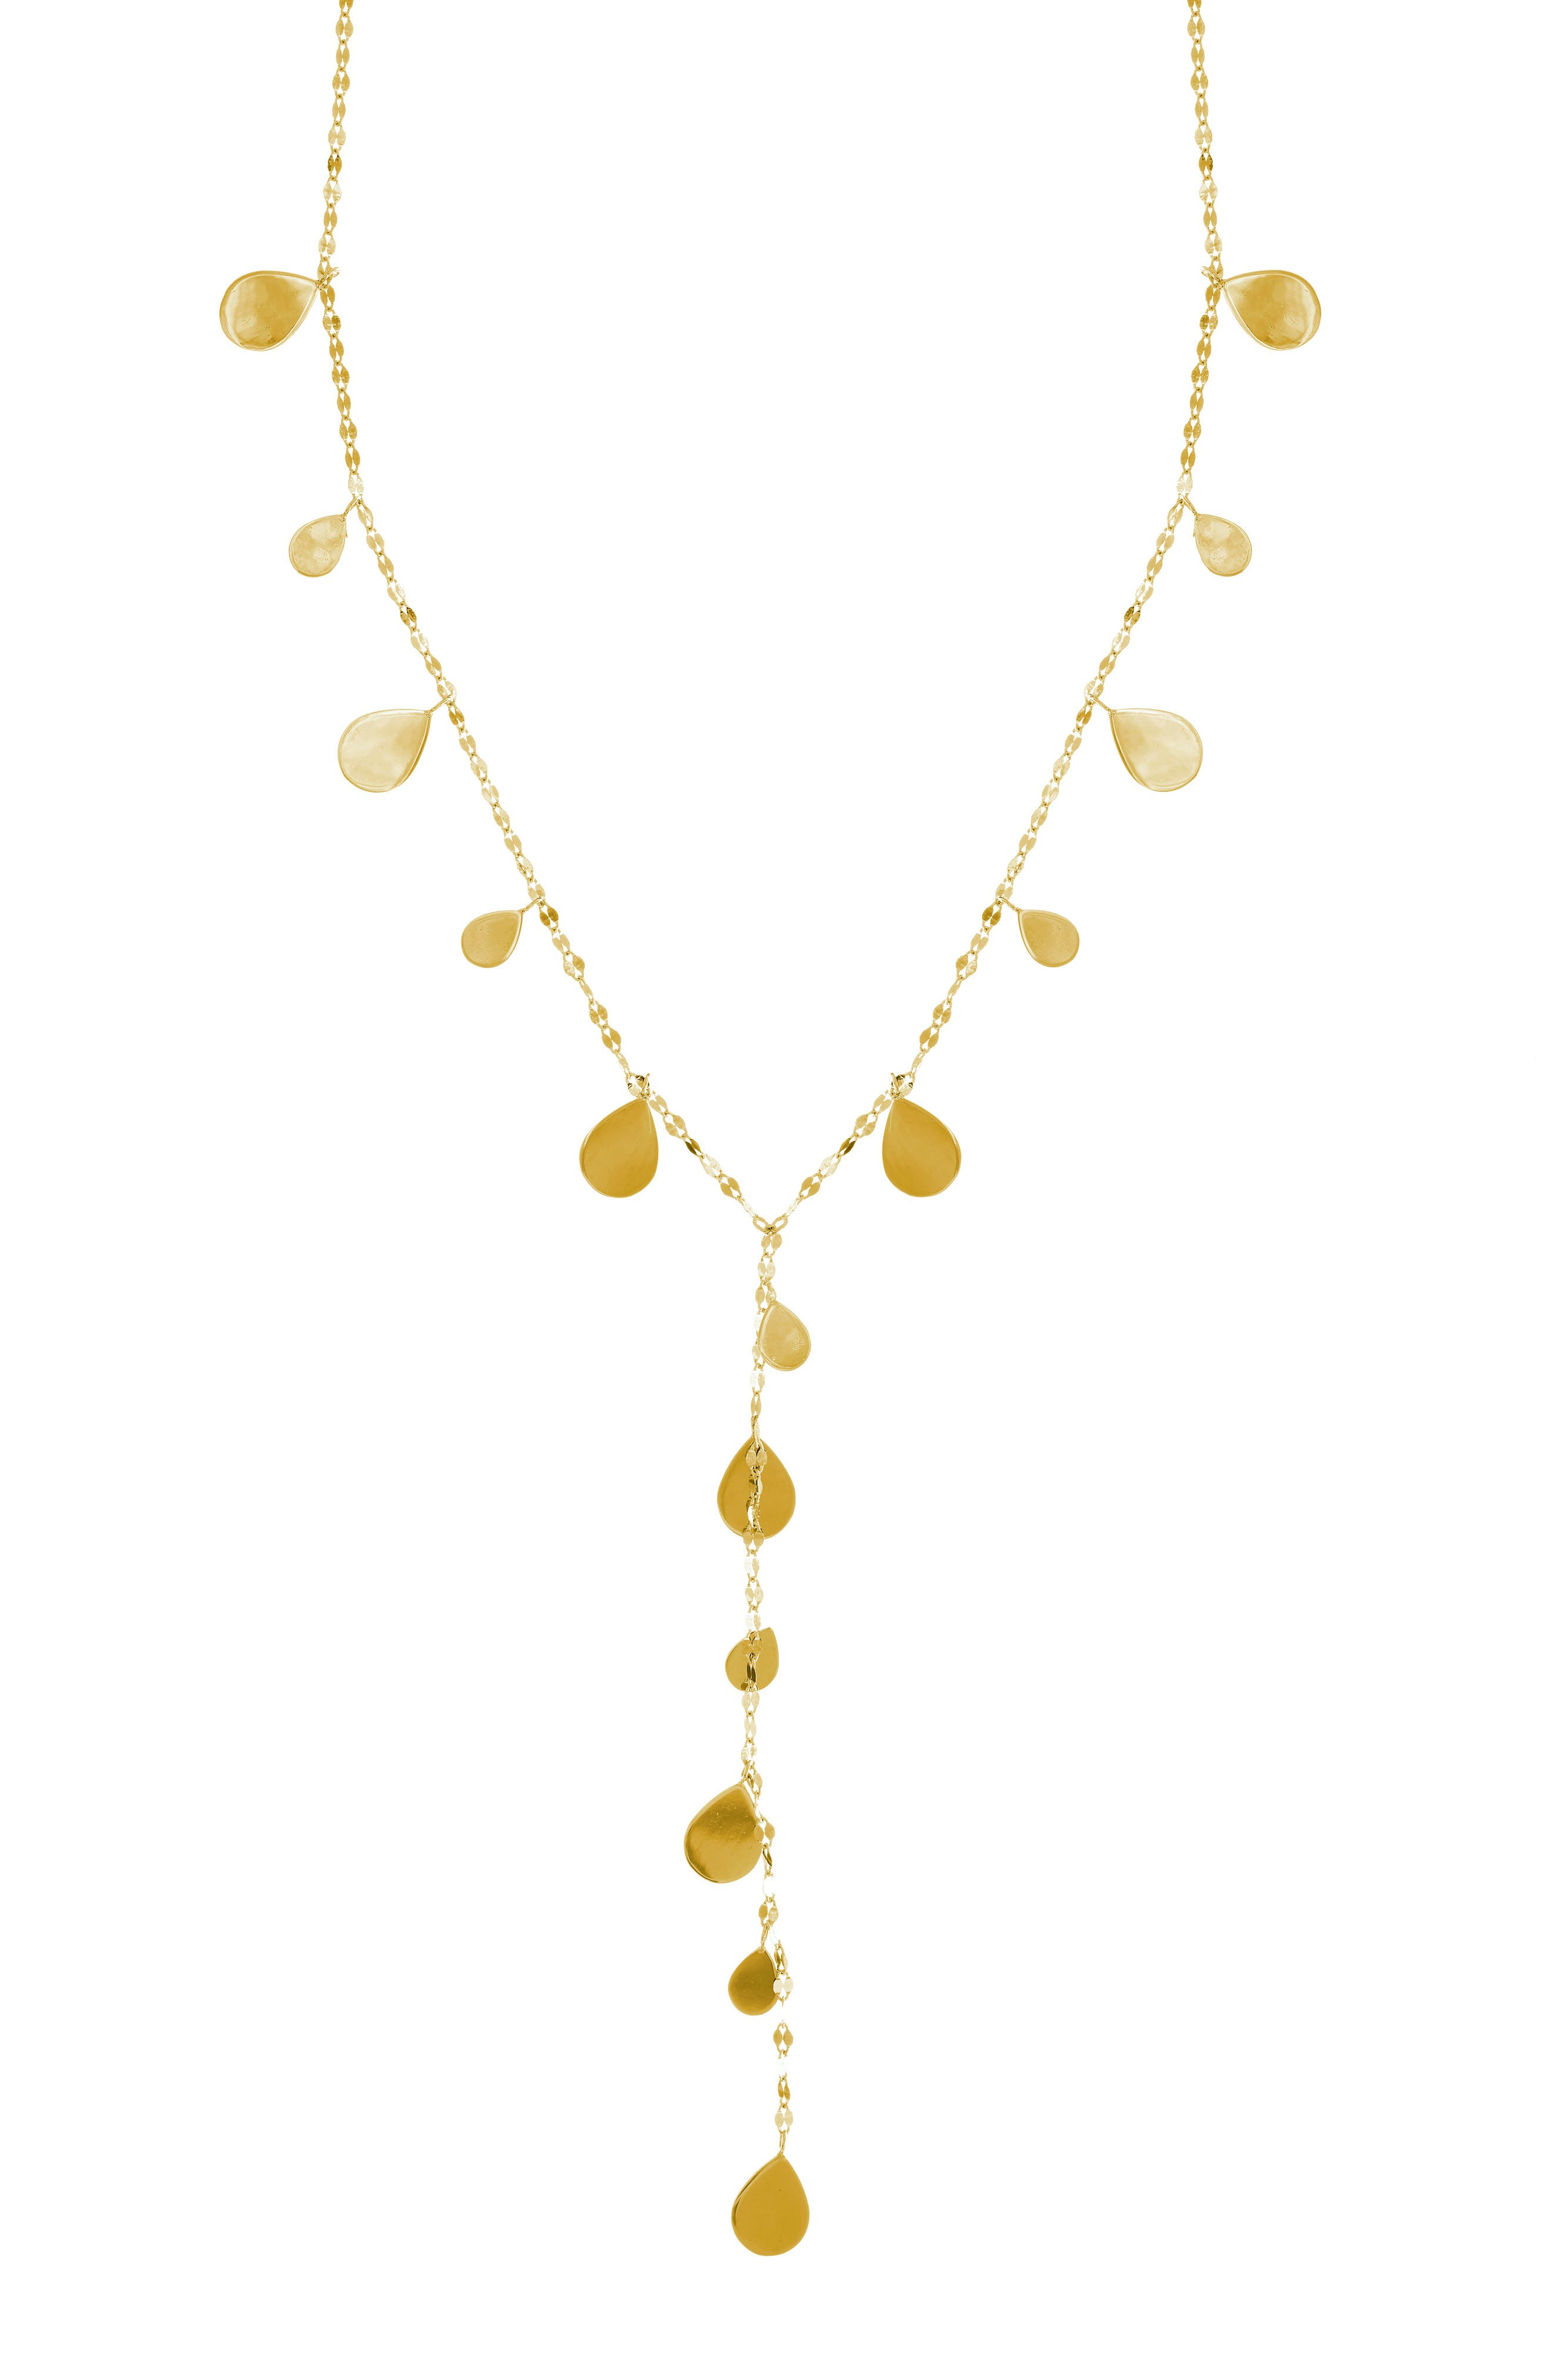 Teardrop Y-Necklace,                             Main thumbnail 1, color,                             Yellow Gold